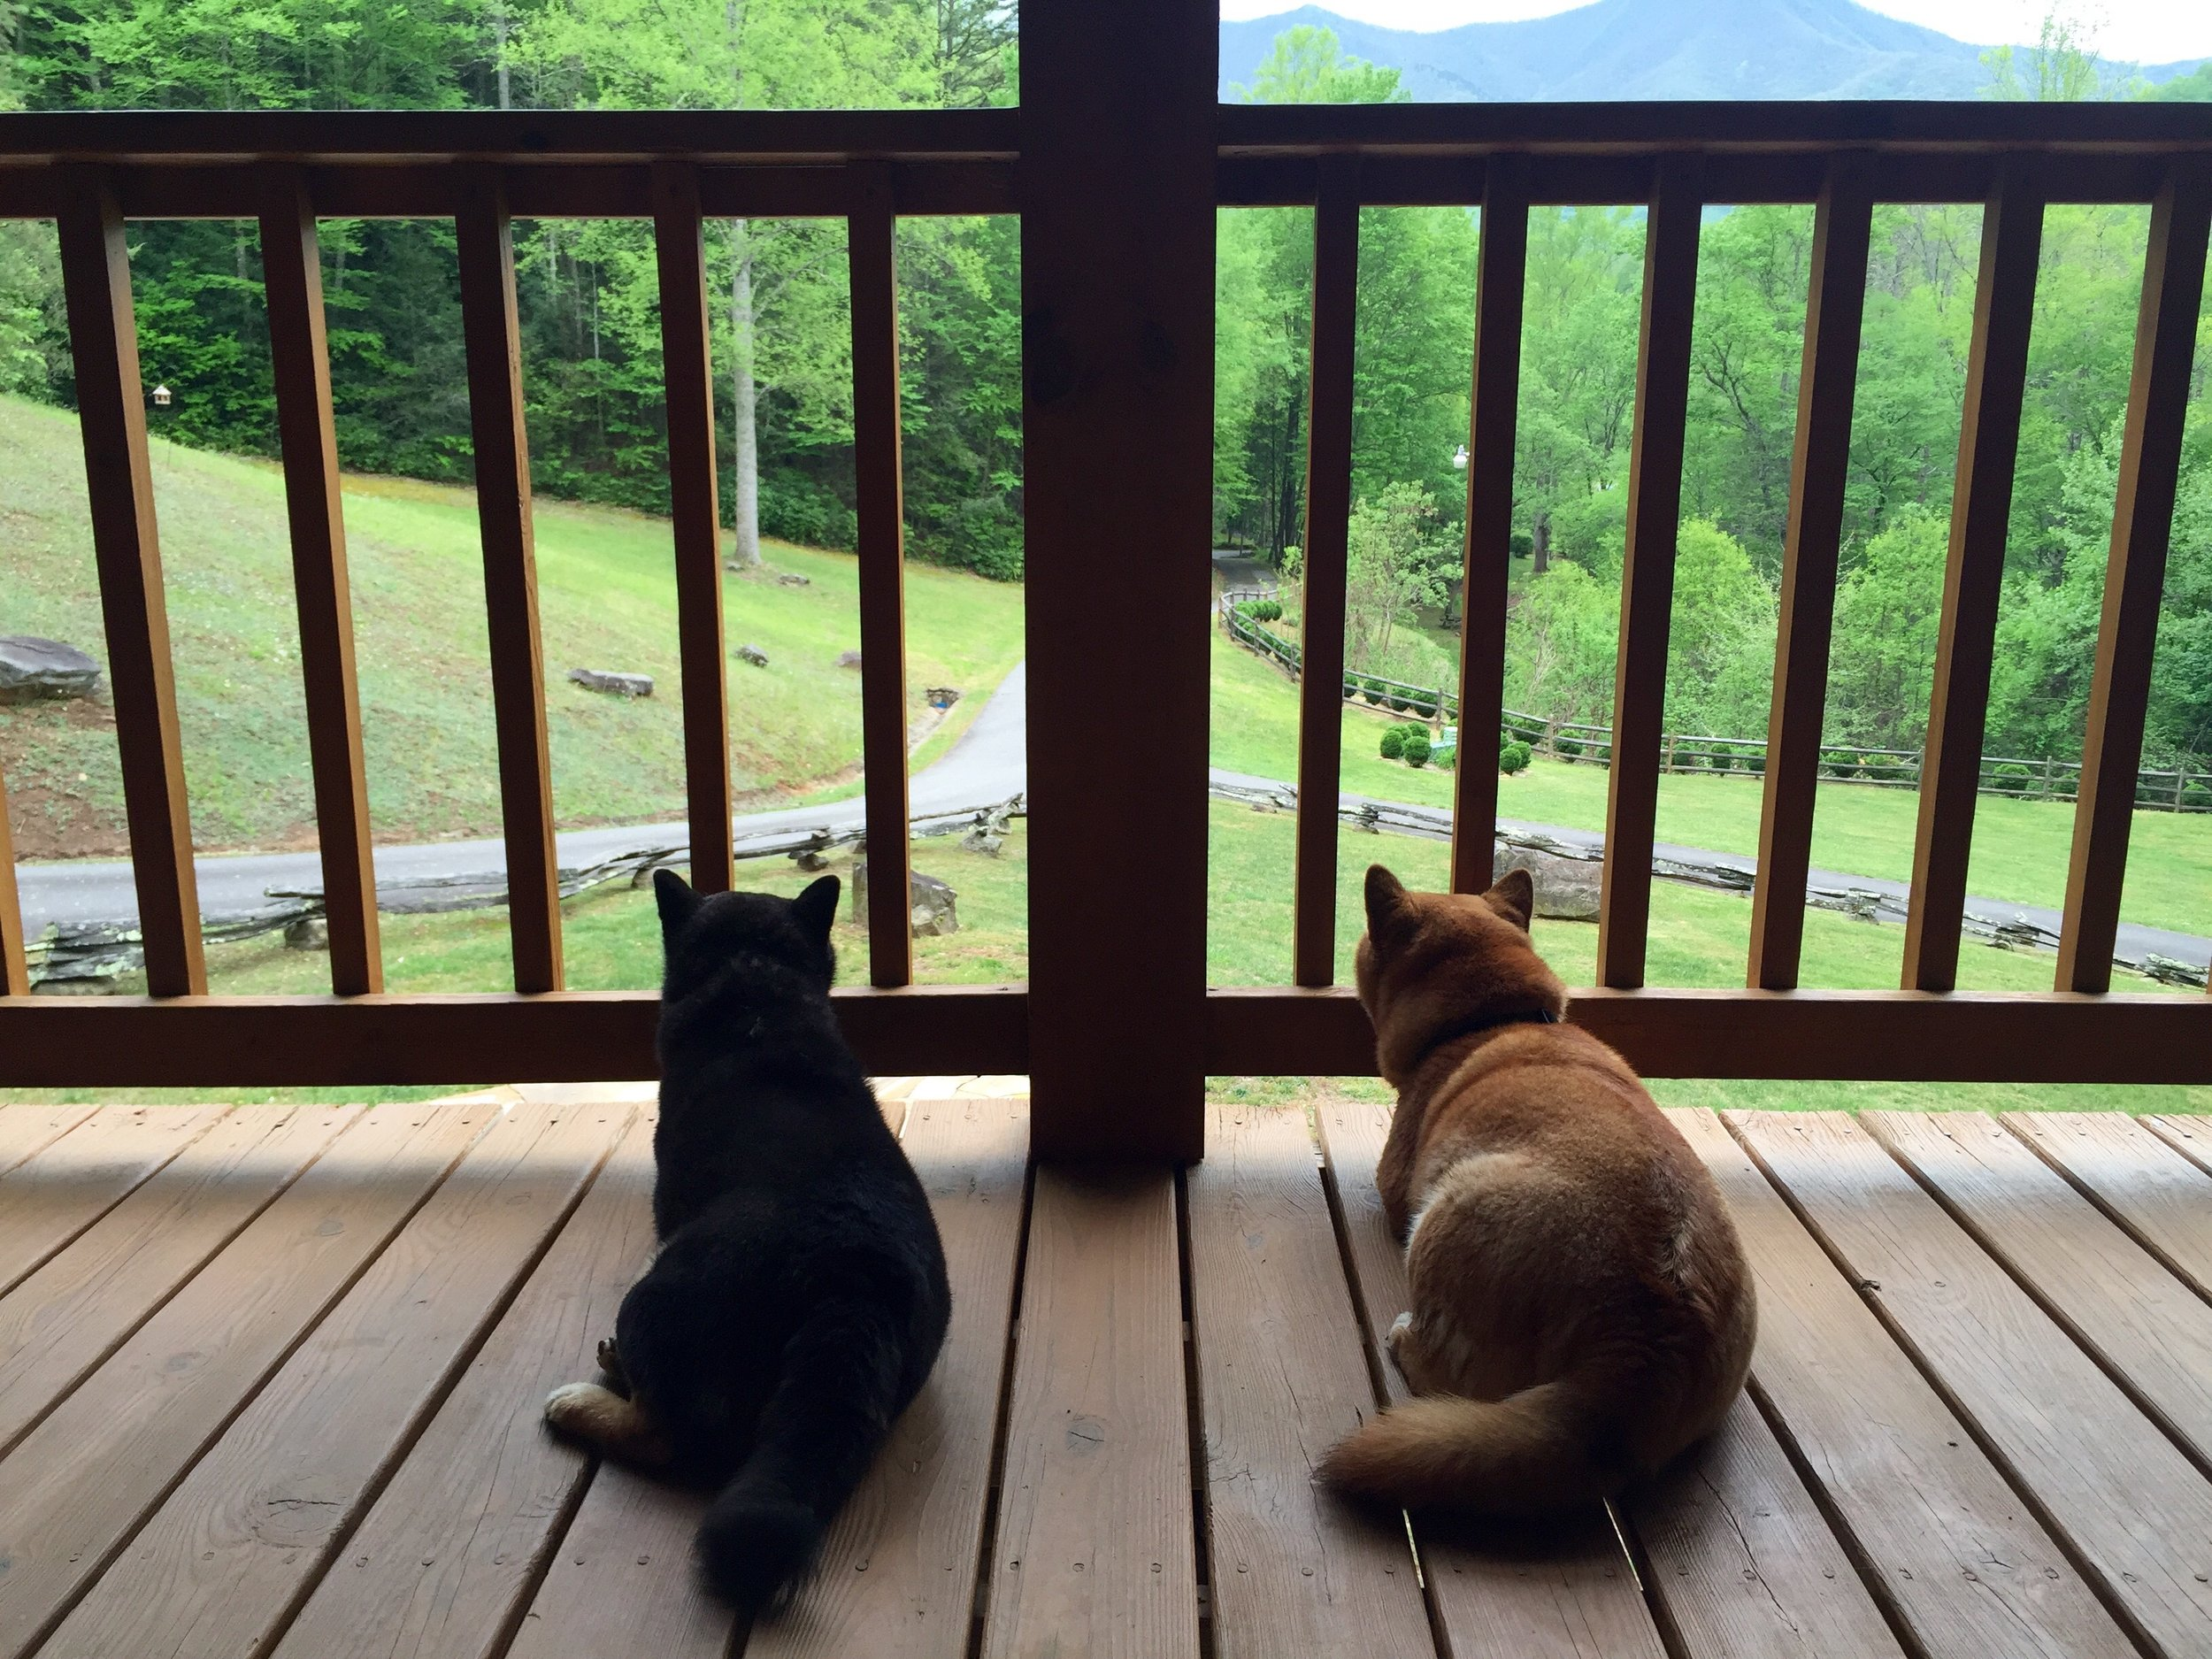 Dogs on the deck…